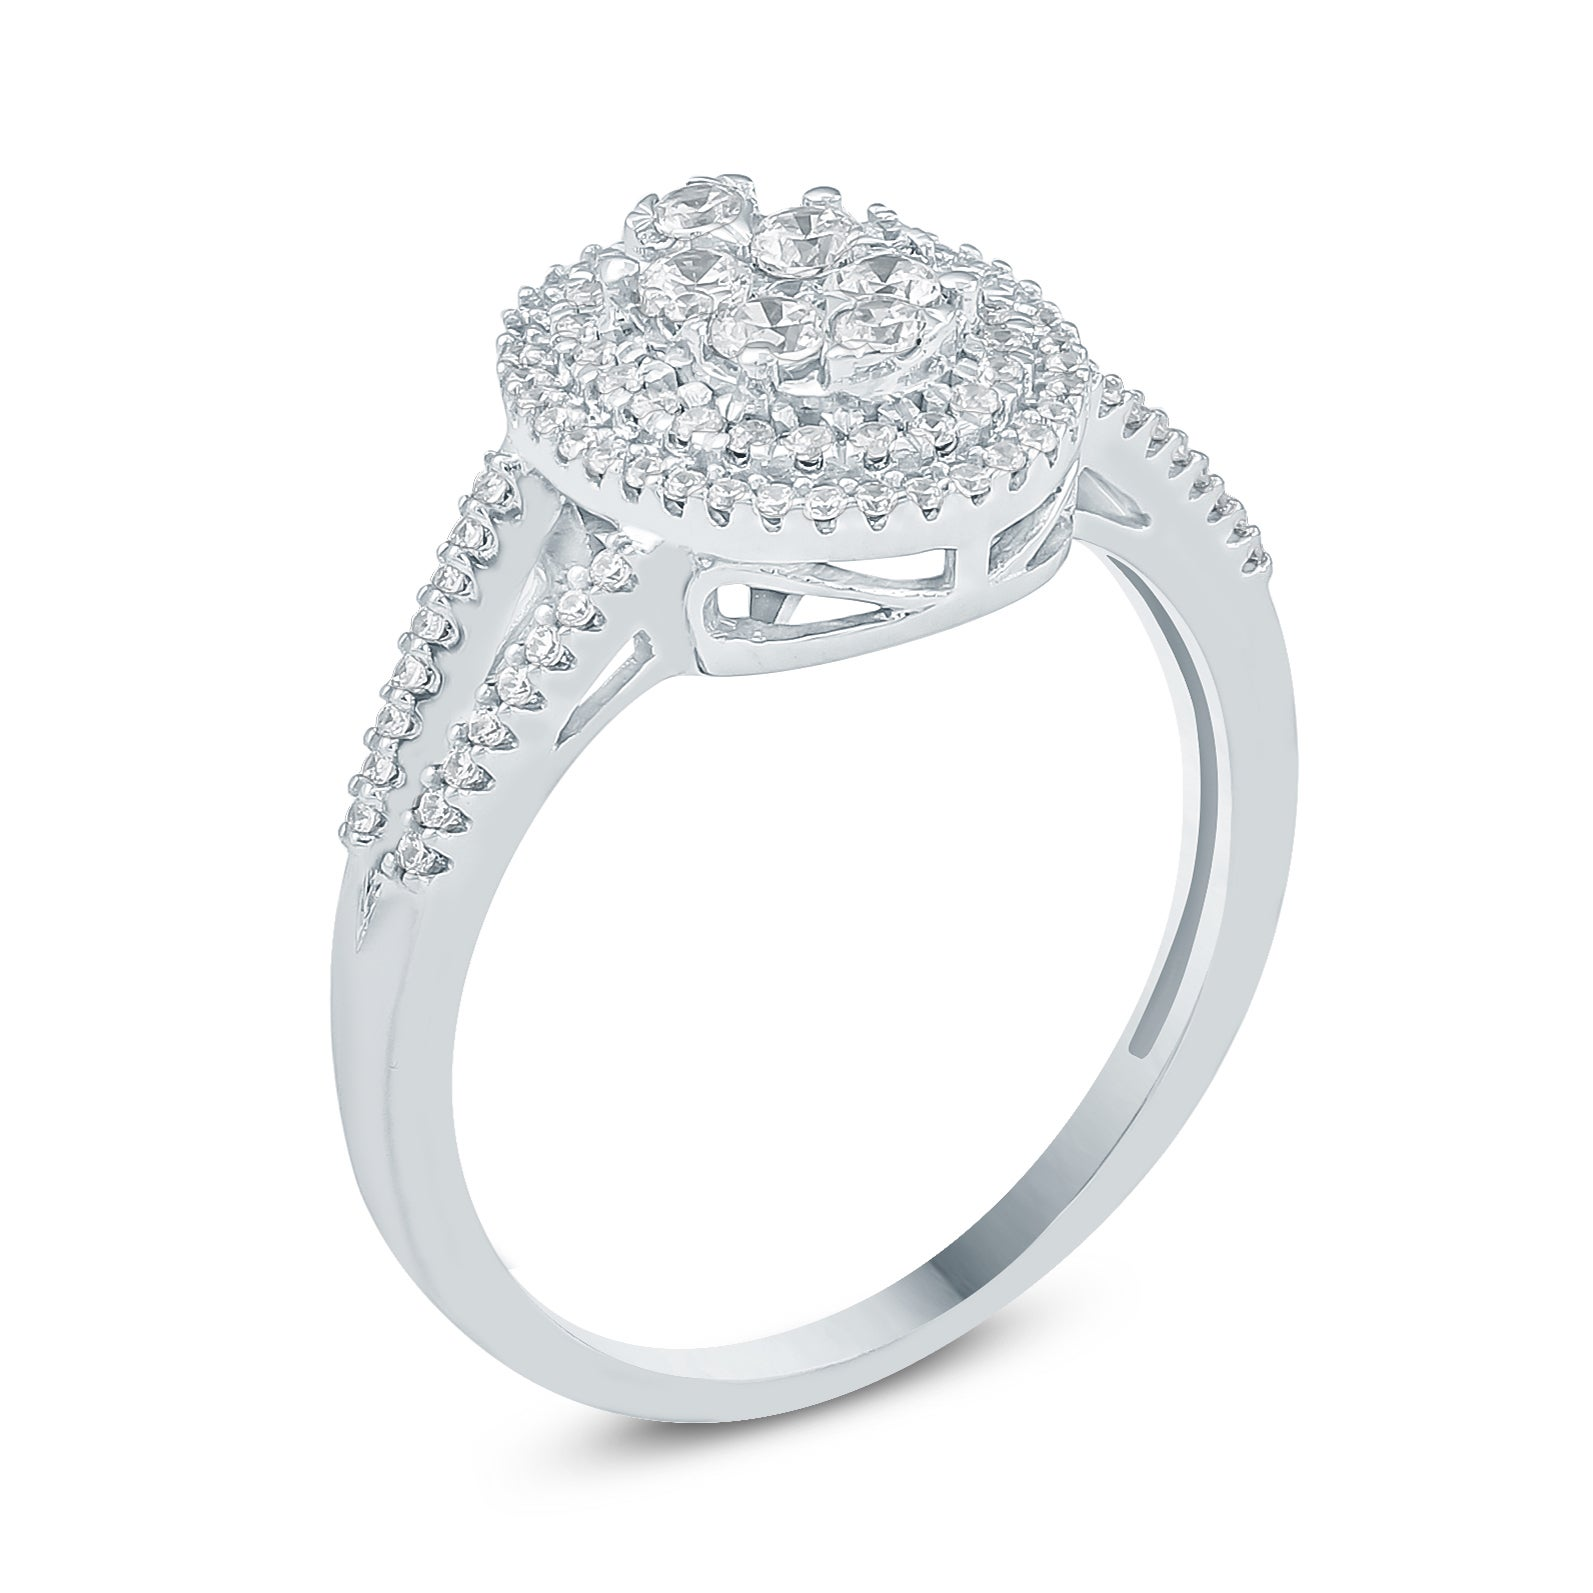 rings engagement products from ms jewelers bridal bands collection carat wedding diamond flowood and jackson